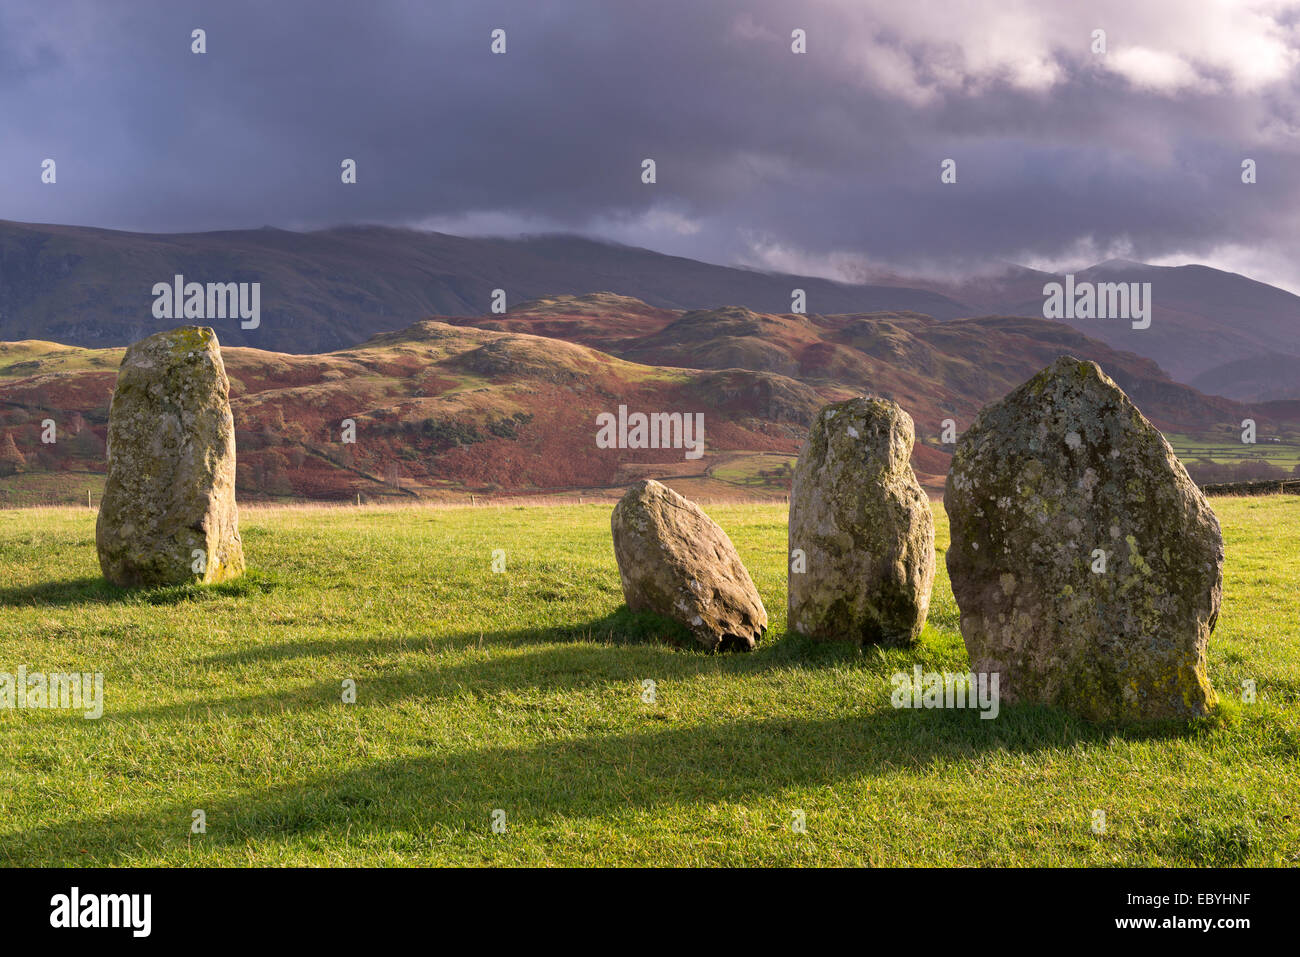 Megalithic standing stones forming part of Castlerigg Stone Circle, Lake District, Cumbria, England. Autumn (November) - Stock Image